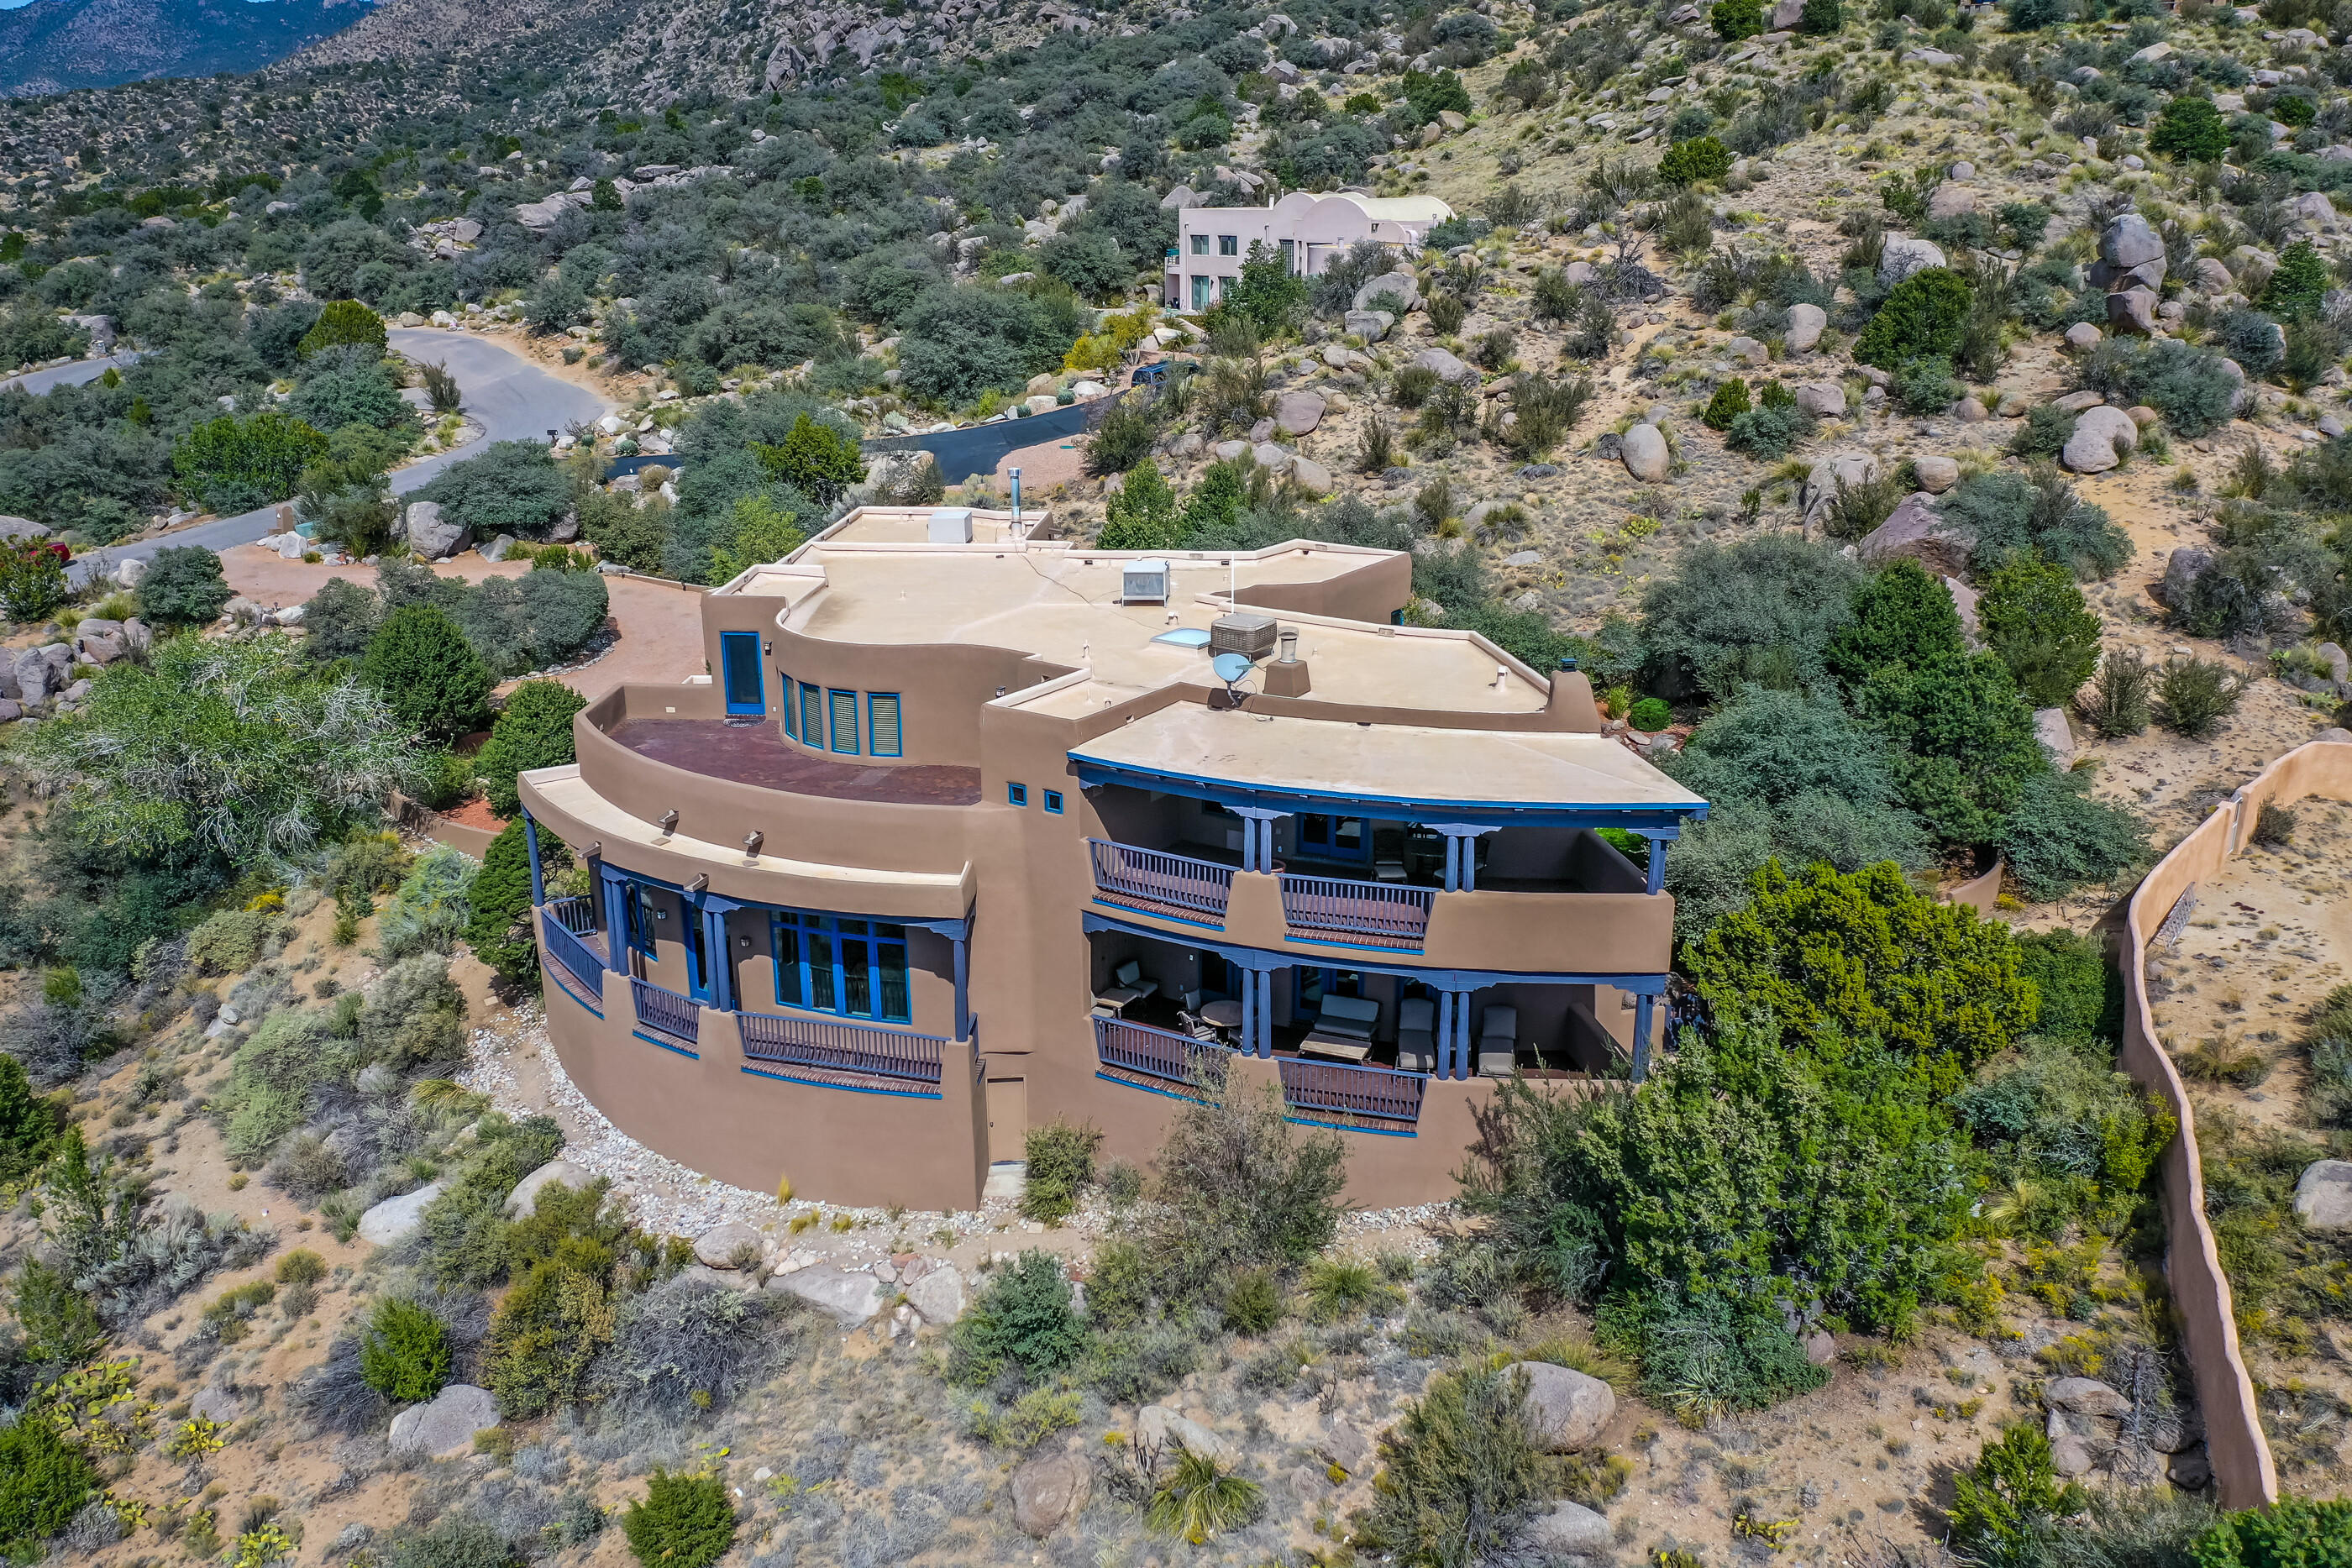 This Stunning Home Is Privately Tucked Away And  Dramatically Situated For Incredible VIEWS!The Versatile Floor Plan Offers Multigen Living W/4/5BR(2 Down 1-Inlaw Suit),Large Home Office, 5BA, 2Living Areas,Formal Dining,Outdoor Living, 3CG,100K Upgrades In New Roof, Stucco, Canalles&Carpeting!Enter The Sitting & Formal Dining Area W/Stunning Panoramic Views Overlooking The City. 2nd Living Area Includes Custom Built In Shelving And Kiva Wood Burning Fireplace.The Kitchen Has A Huge Granite Island, Gas Stove Top,Ample Counter  & Cabinet Space! Upstairs You Will Find The Master Suite W/Extraordinary Viewing Patio, Luxurious Master BR& Huge Walk In Closet!2 Oversized BR &Loft W/Wet Bar Which Is Large Enough For An Oversized Pool Table.The Backyard Is Ready For Entertaining & Beautiful Views!